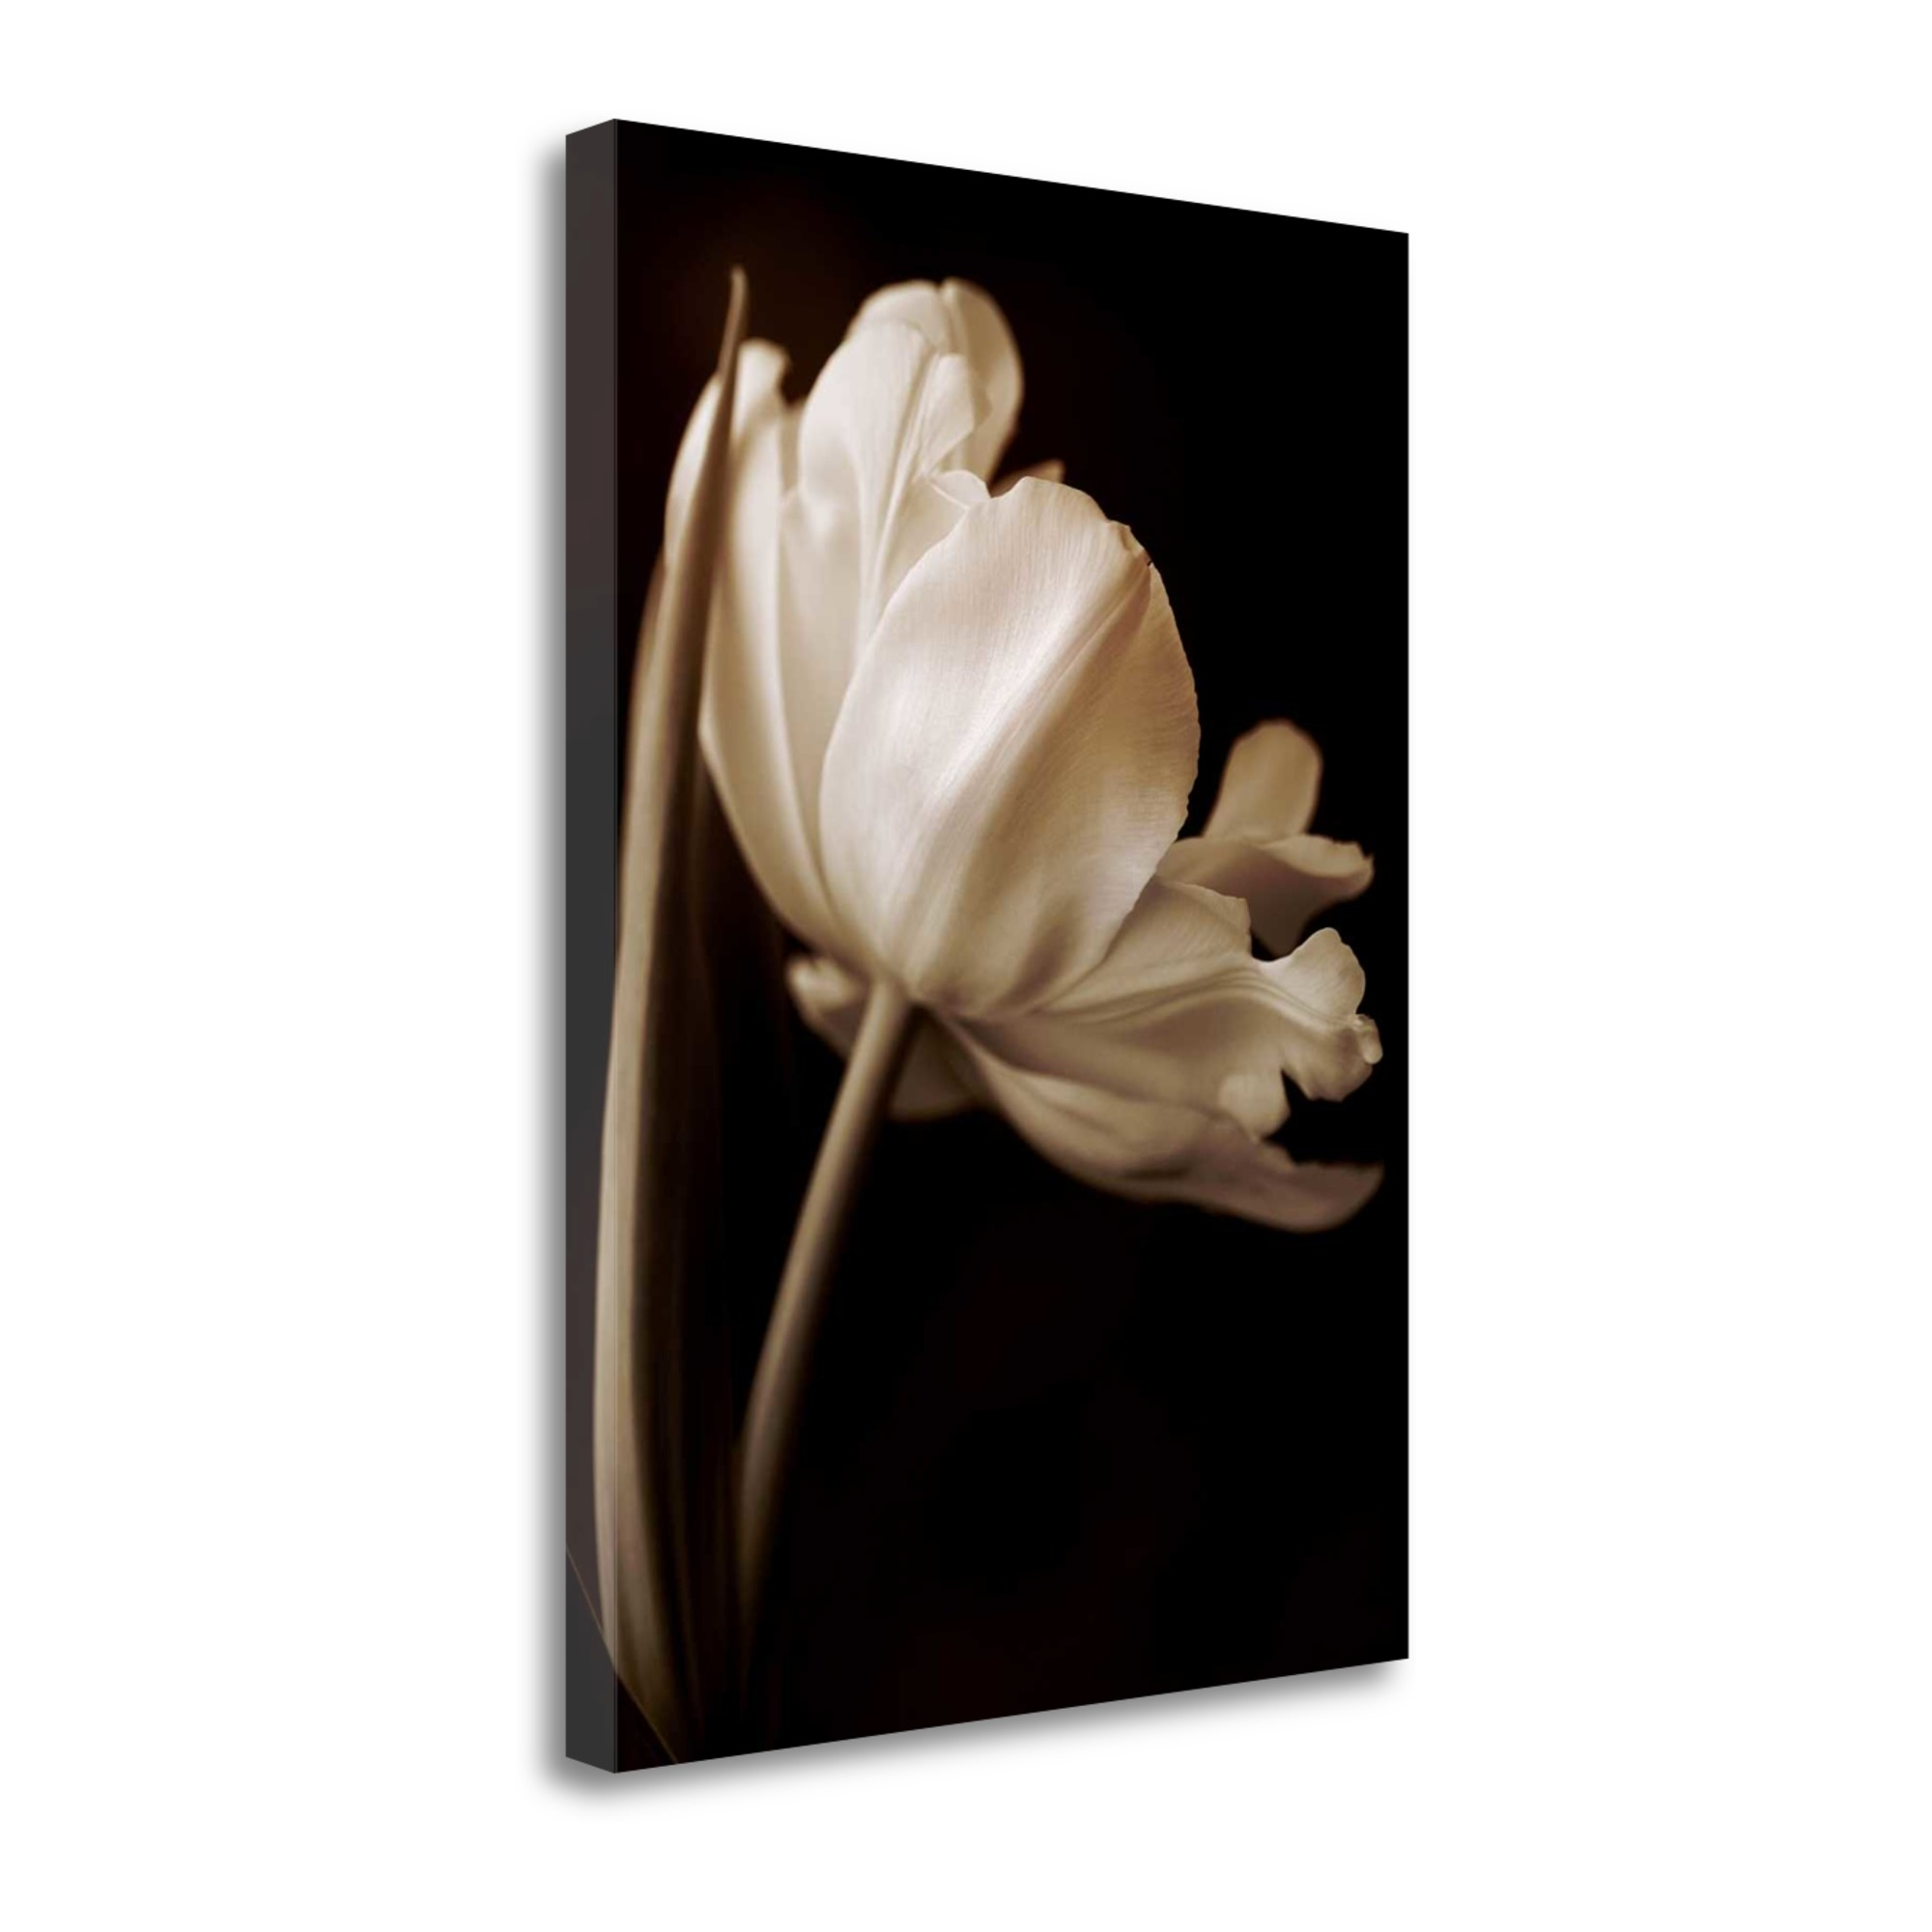 "Champagne Tulip I By Charles Britt, 21"" x 29\"" Fine Art Giclee Print on Gallery Wrap Canvas, Ready to Hang"